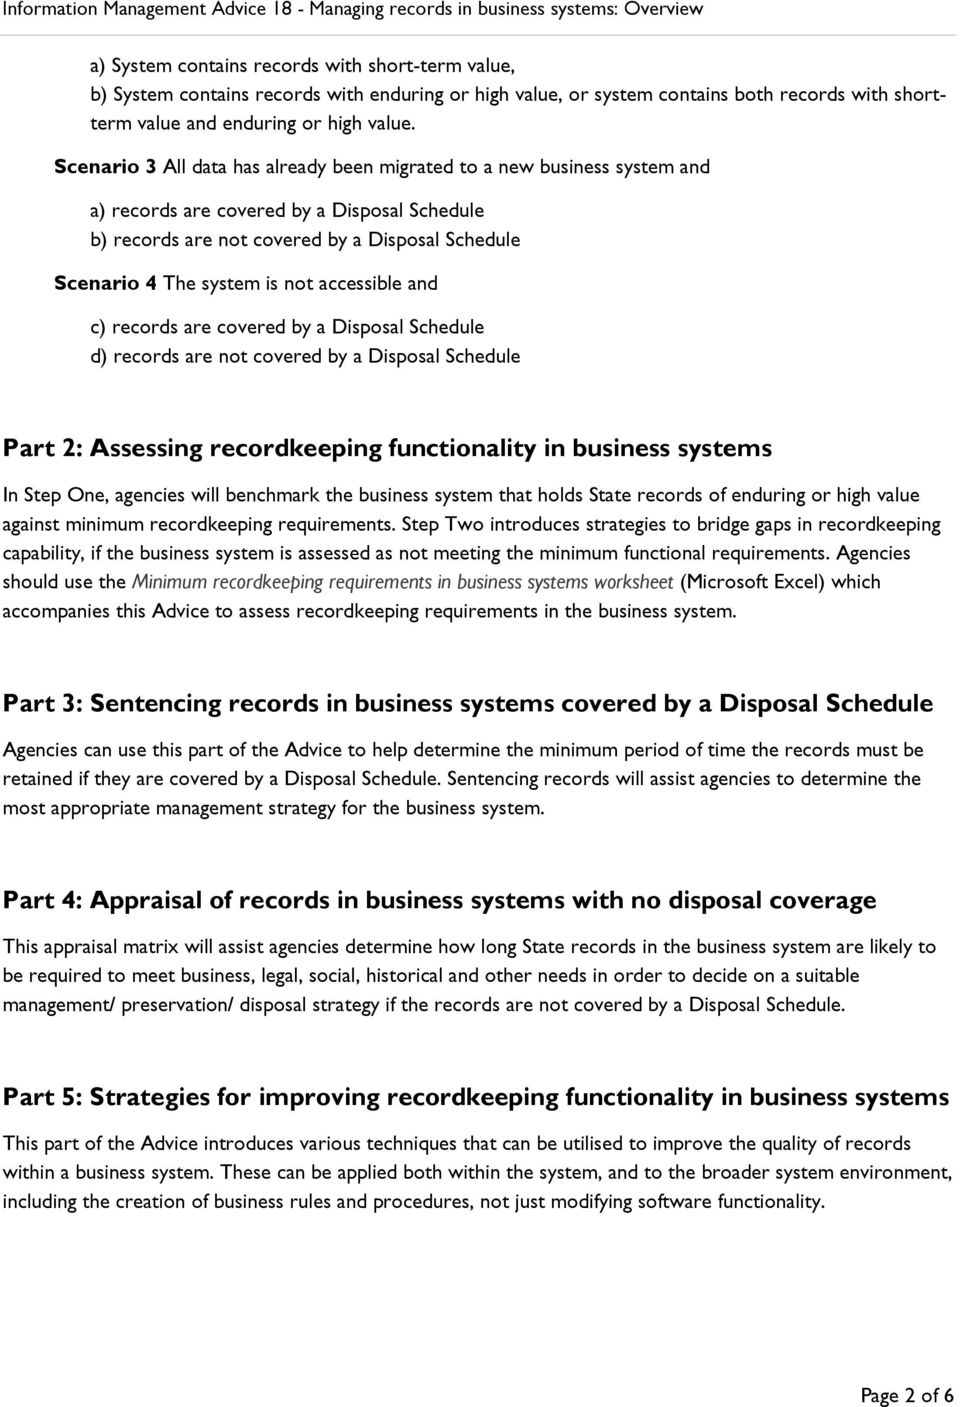 accessible and c) records are covered by a Disposal Schedule d) records are not covered by a Disposal Schedule Part 2: Assessing recordkeeping functionality in business systems In Step One, agencies